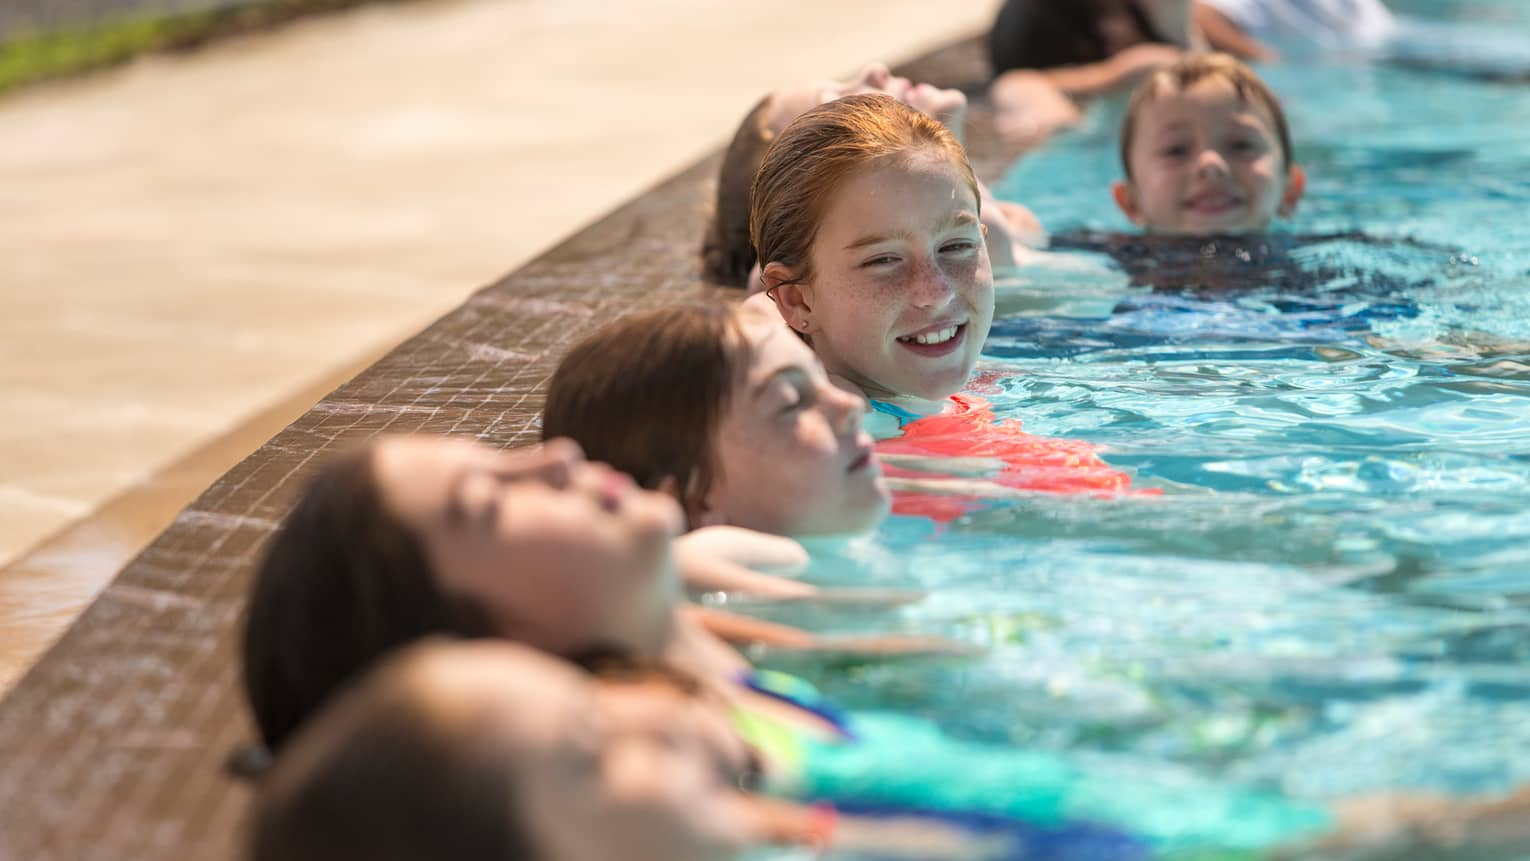 Six children smile, lean their heads against side of swimming pool